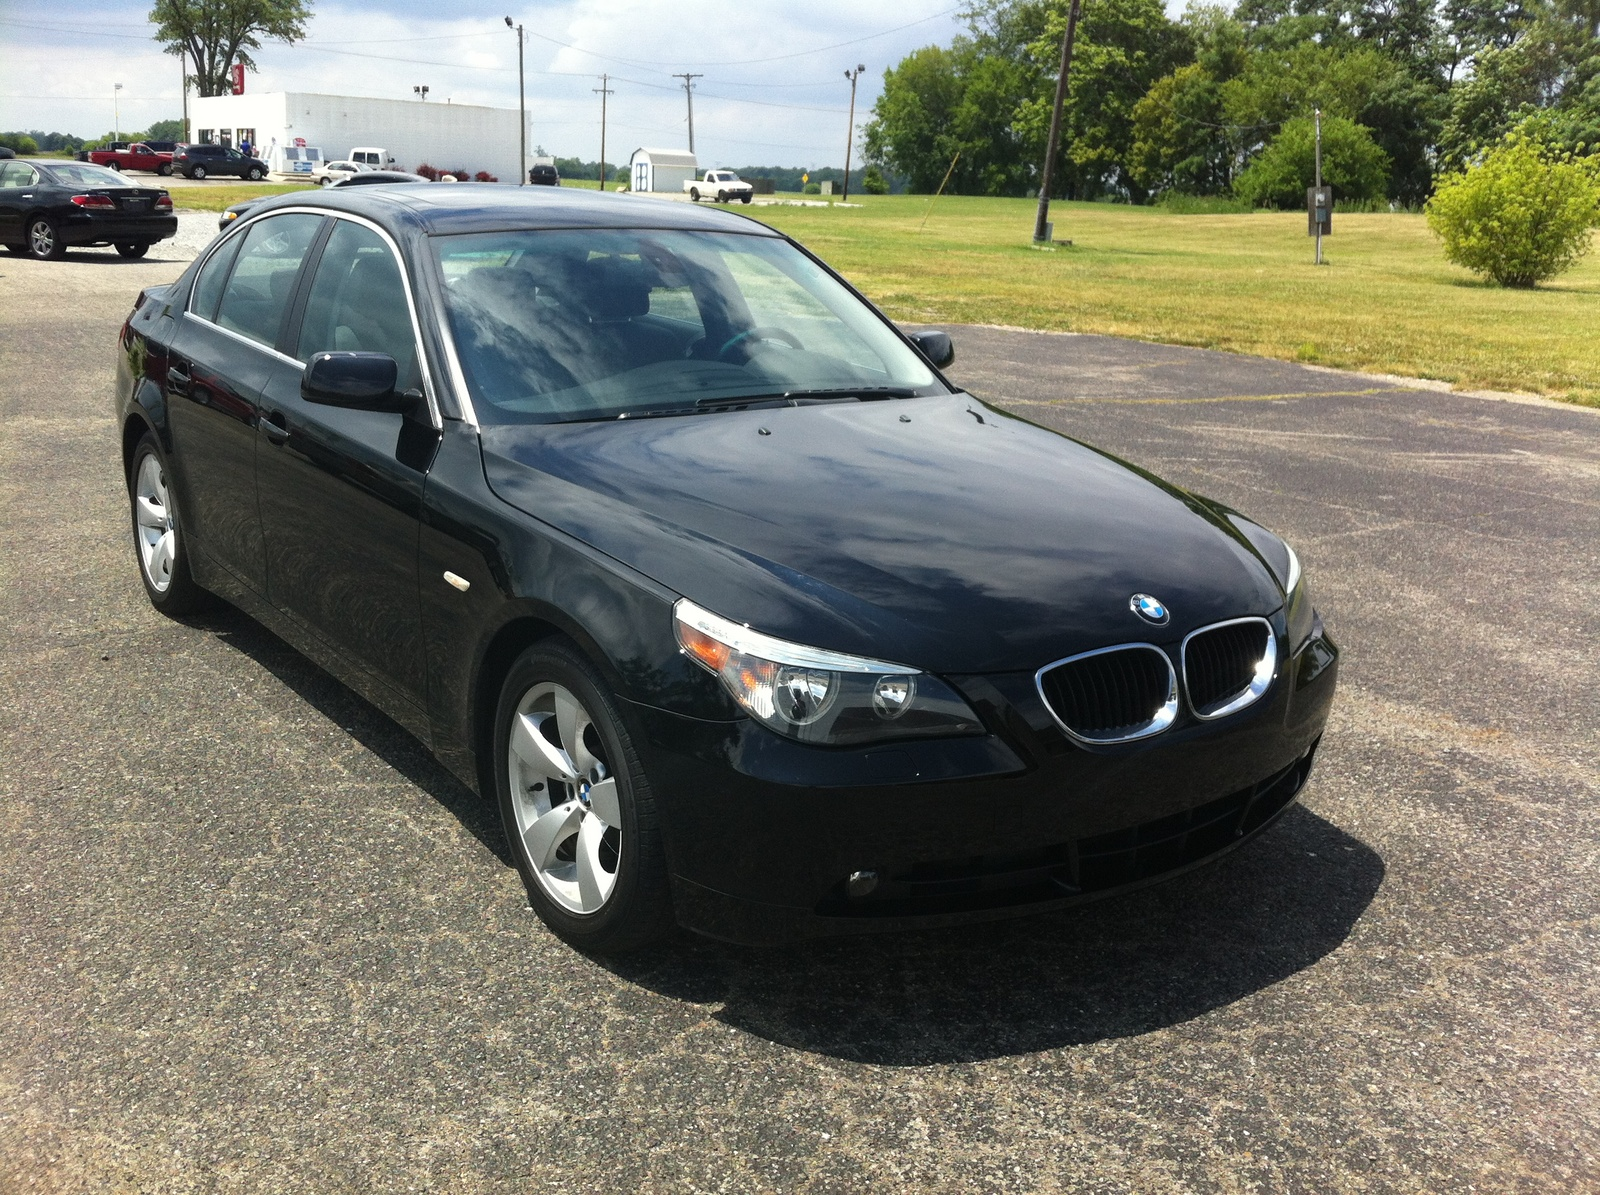 BMW 5 series 525i 2005 photo - 8